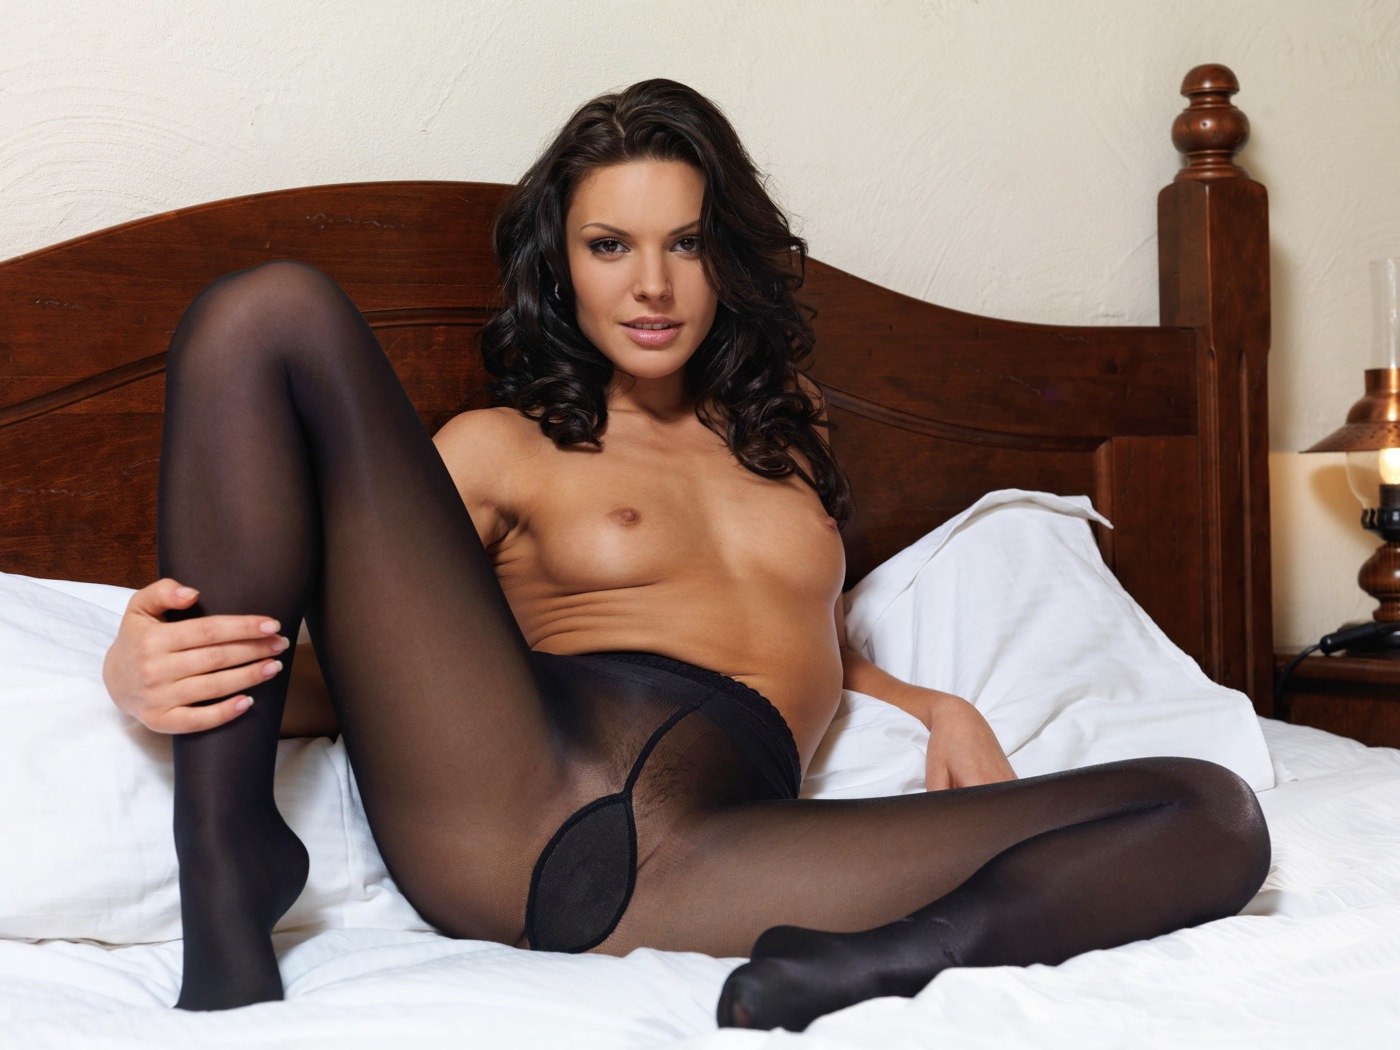 naked-girls-in-tights-pantyhose-mix-vol3-88